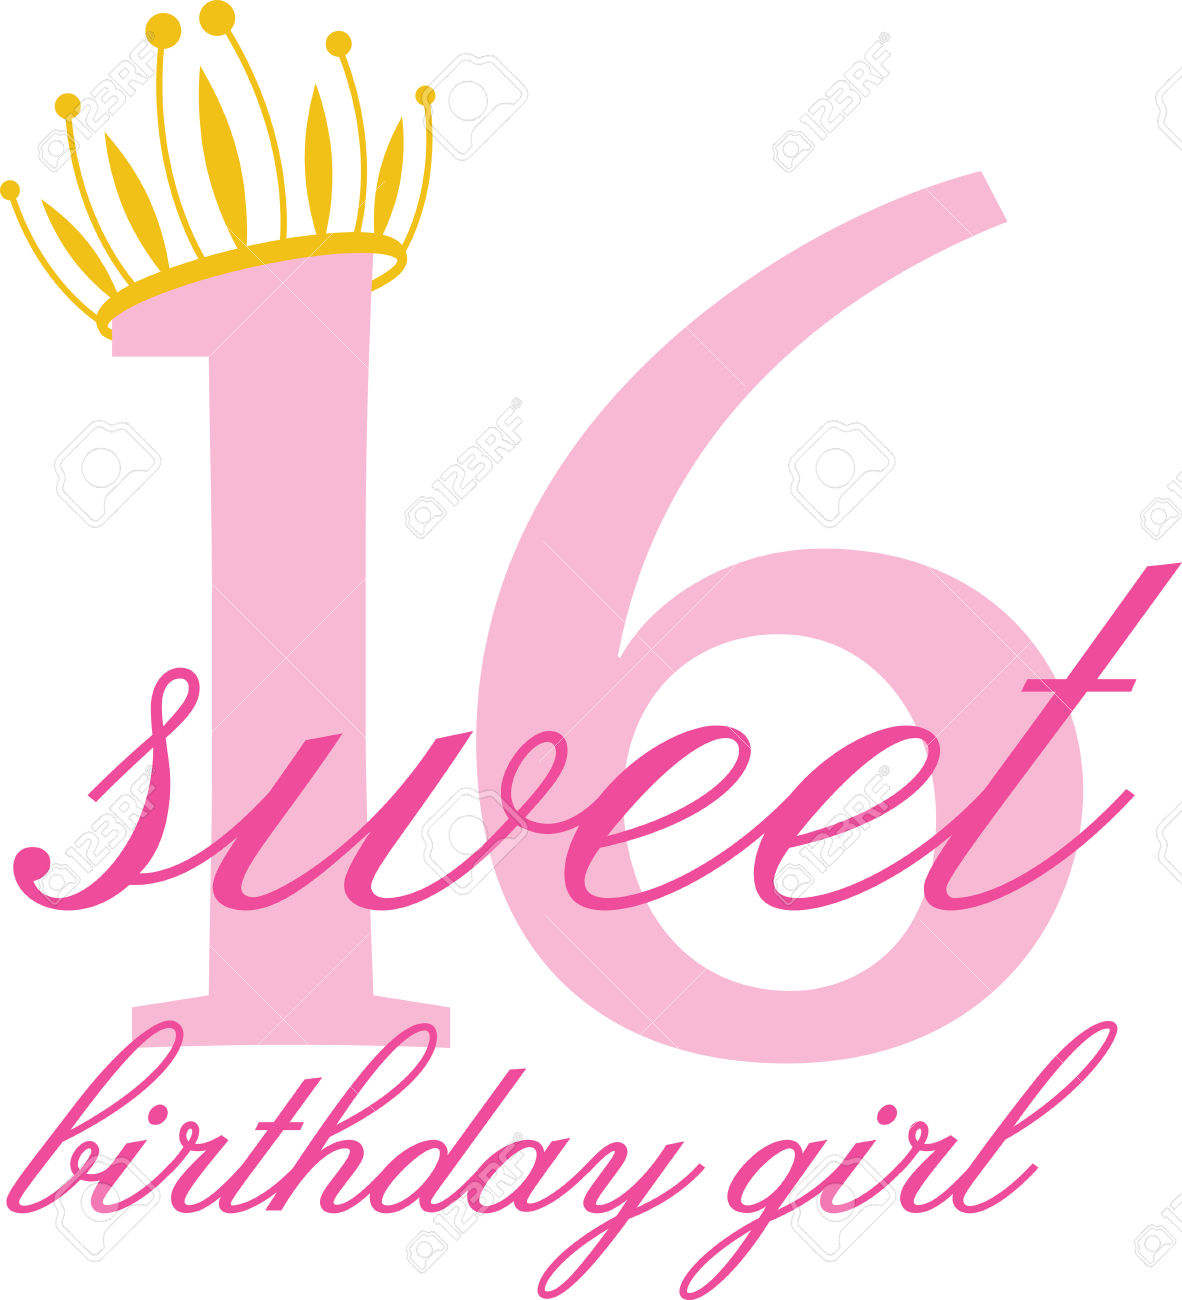 16th birthday clipart simple graphic free stock Sweet 16 Clipart | Free download best Sweet 16 Clipart on ClipArtMag.com graphic free stock